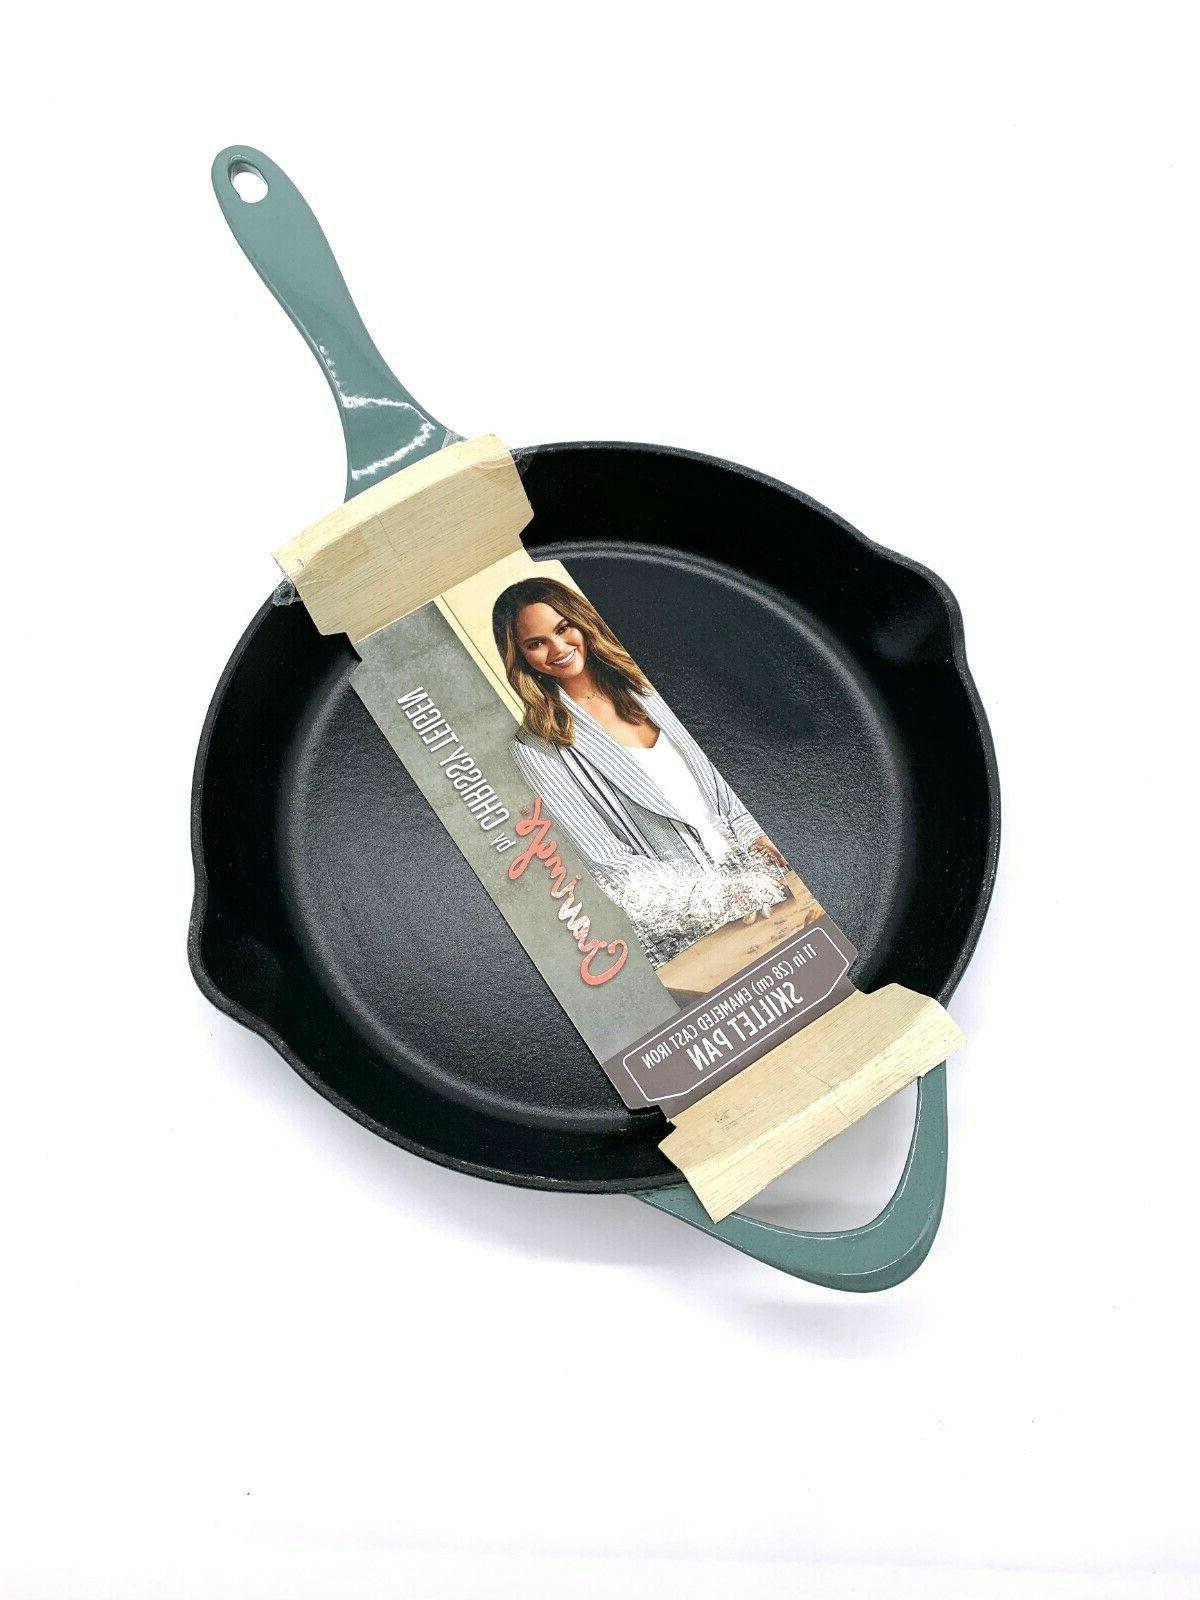 11 enamel skillet pan oven and grill